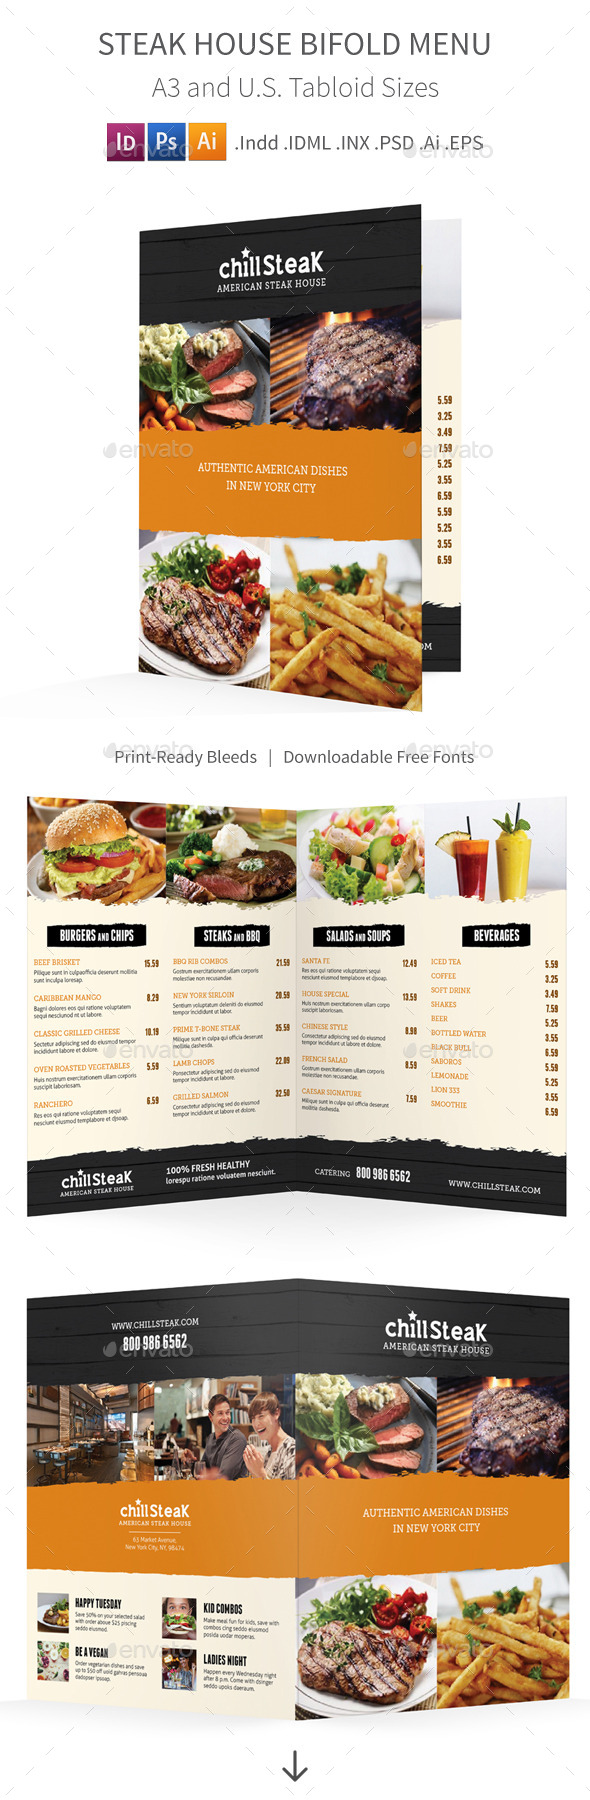 GraphicRiver Steak House Bifold Halffold Menu 11163348